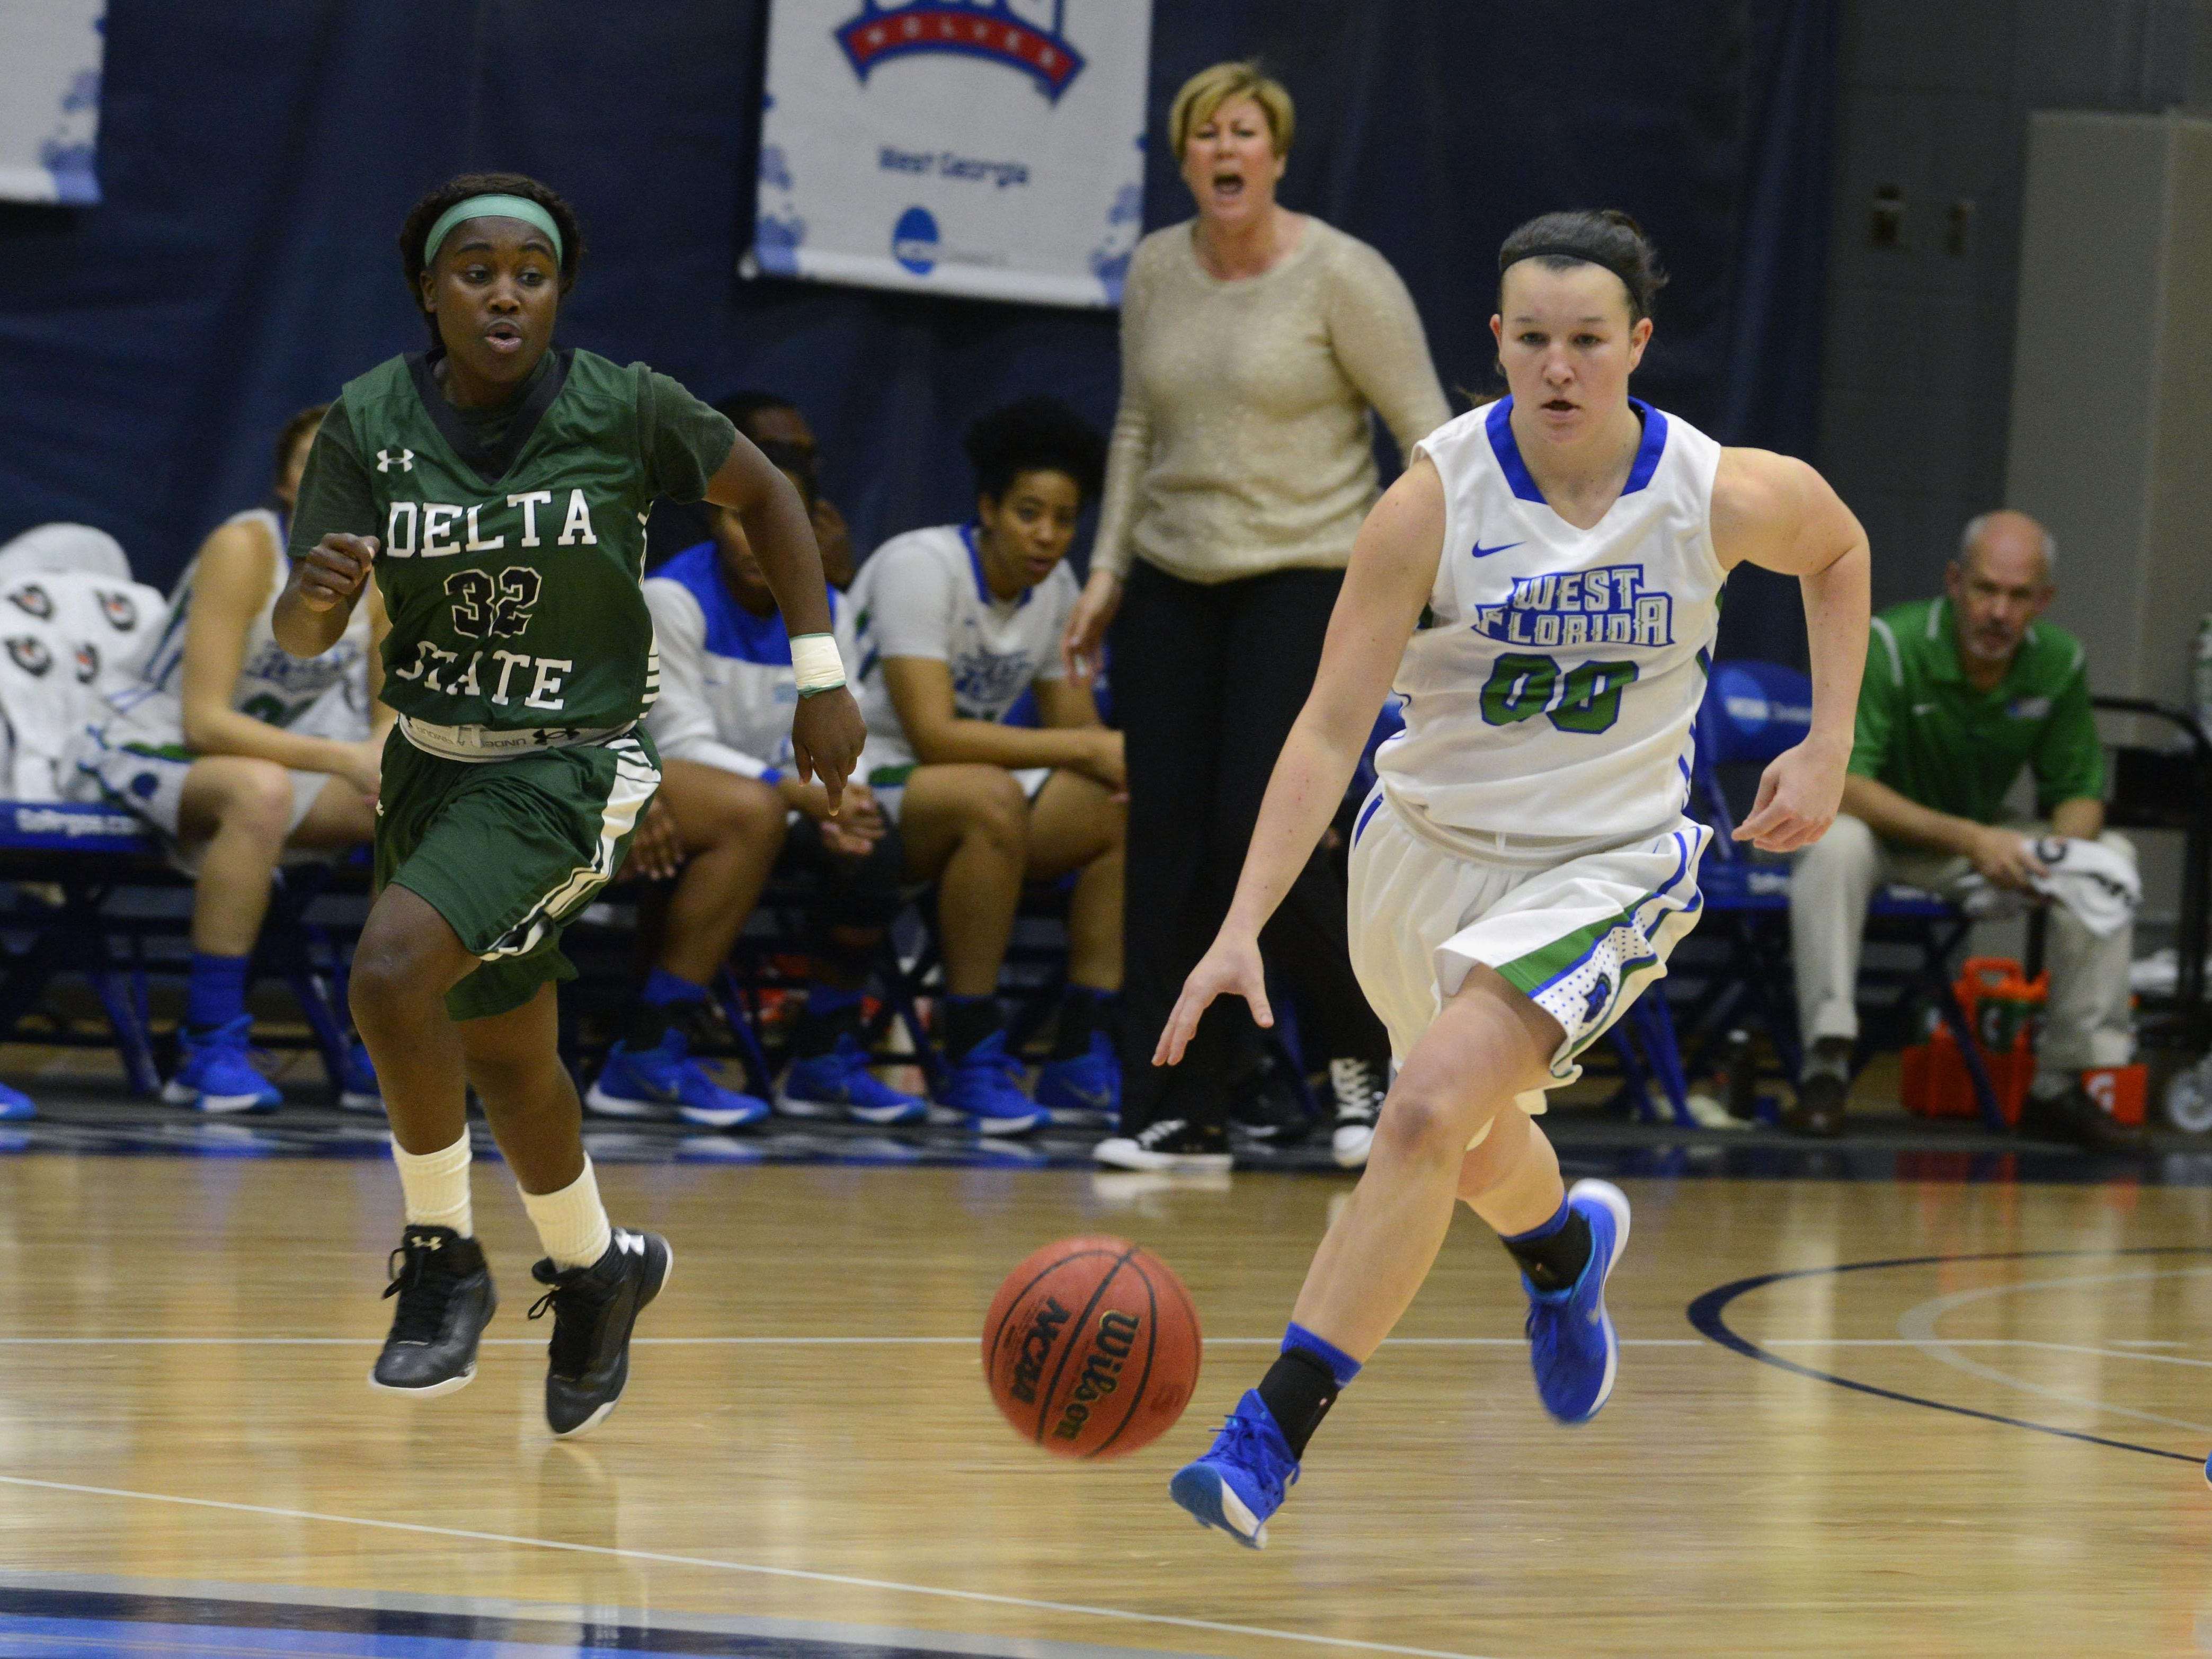 West Florida's Alex Coyne scored 7 points and had six assists but the UWF Argos dropped a tough loss to West Georgia on the road Thursday night.